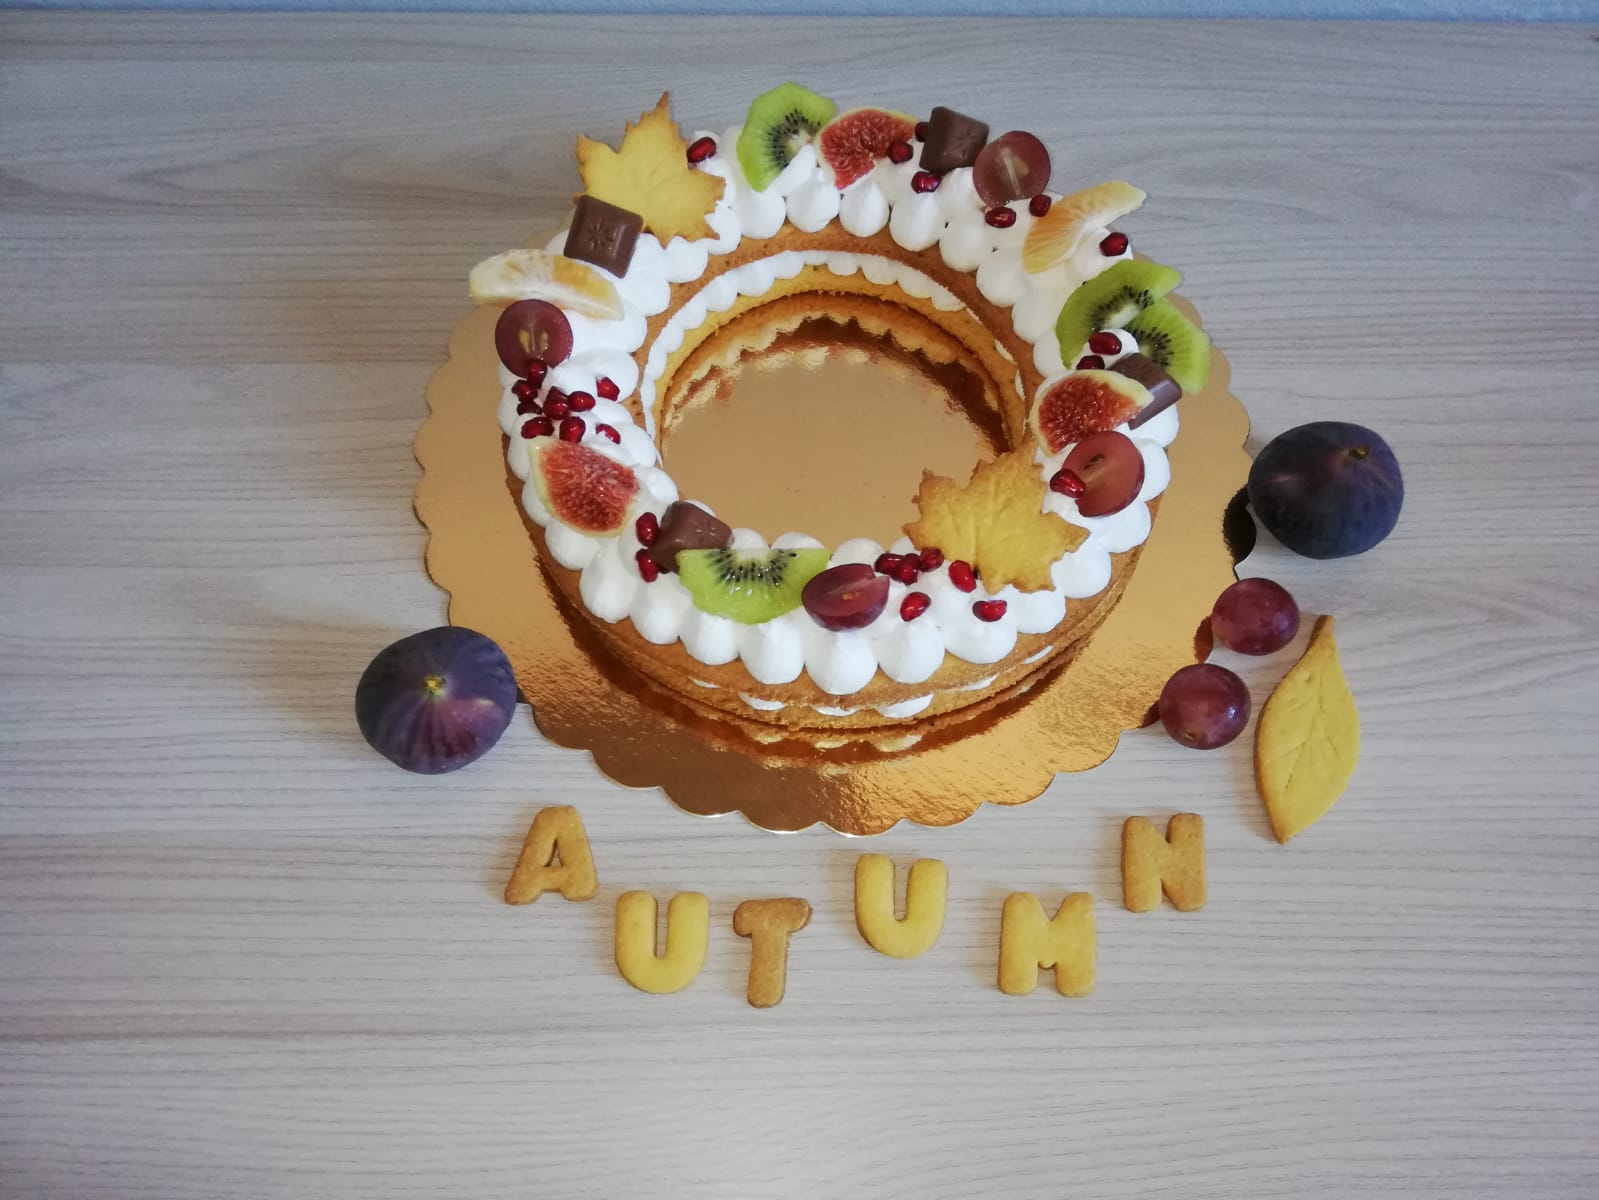 Cream tart con crema Chantilly e frutta di stagione